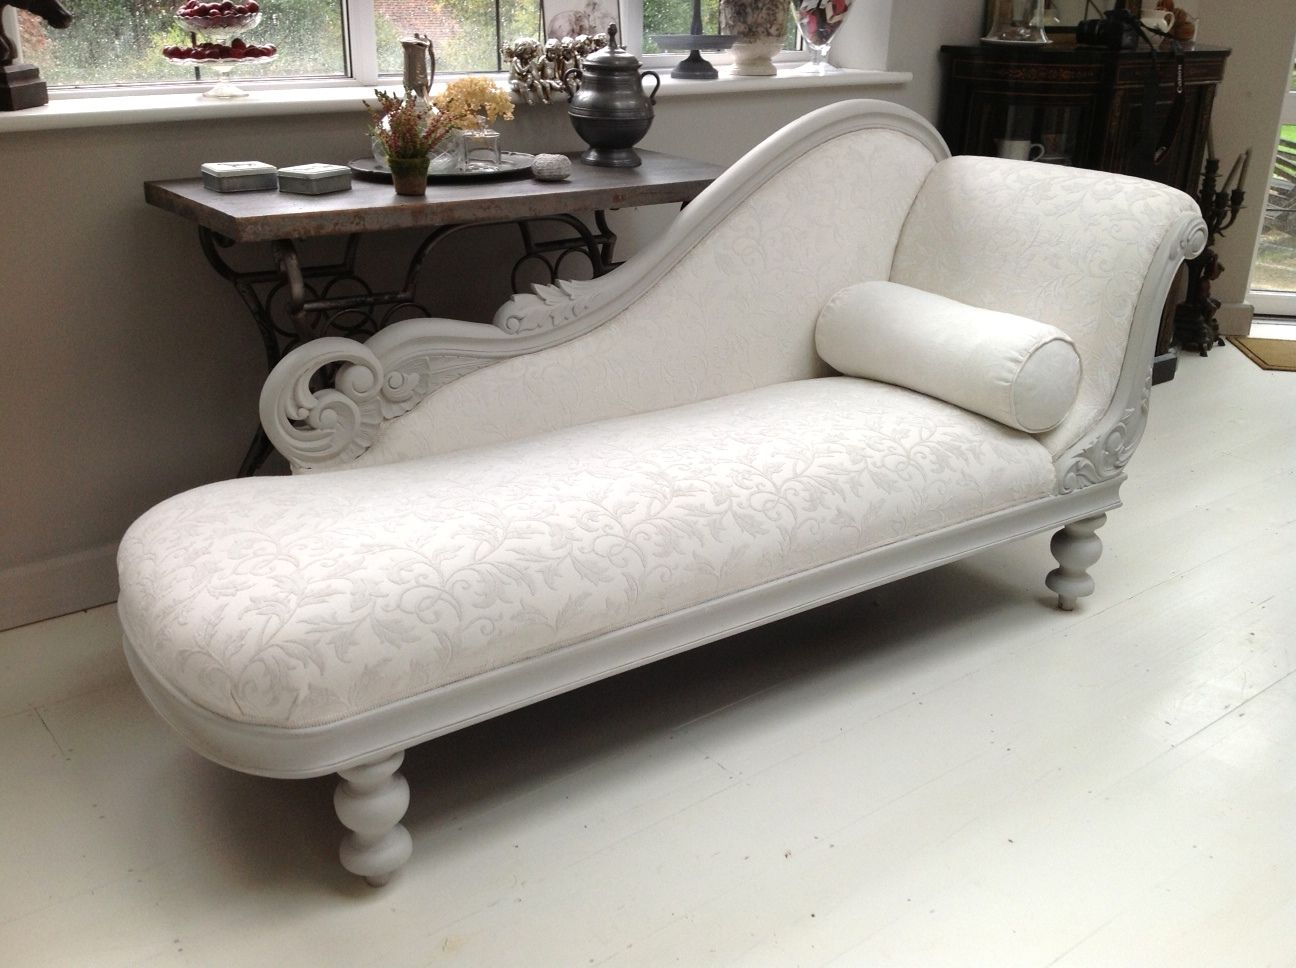 A Dazzling Chaise Longue Painted In Annie Sloan Chalk Paint Paris Grey With White Damask Upholstery At No44home Couch With Chaise Furniture Bedroom Furniture